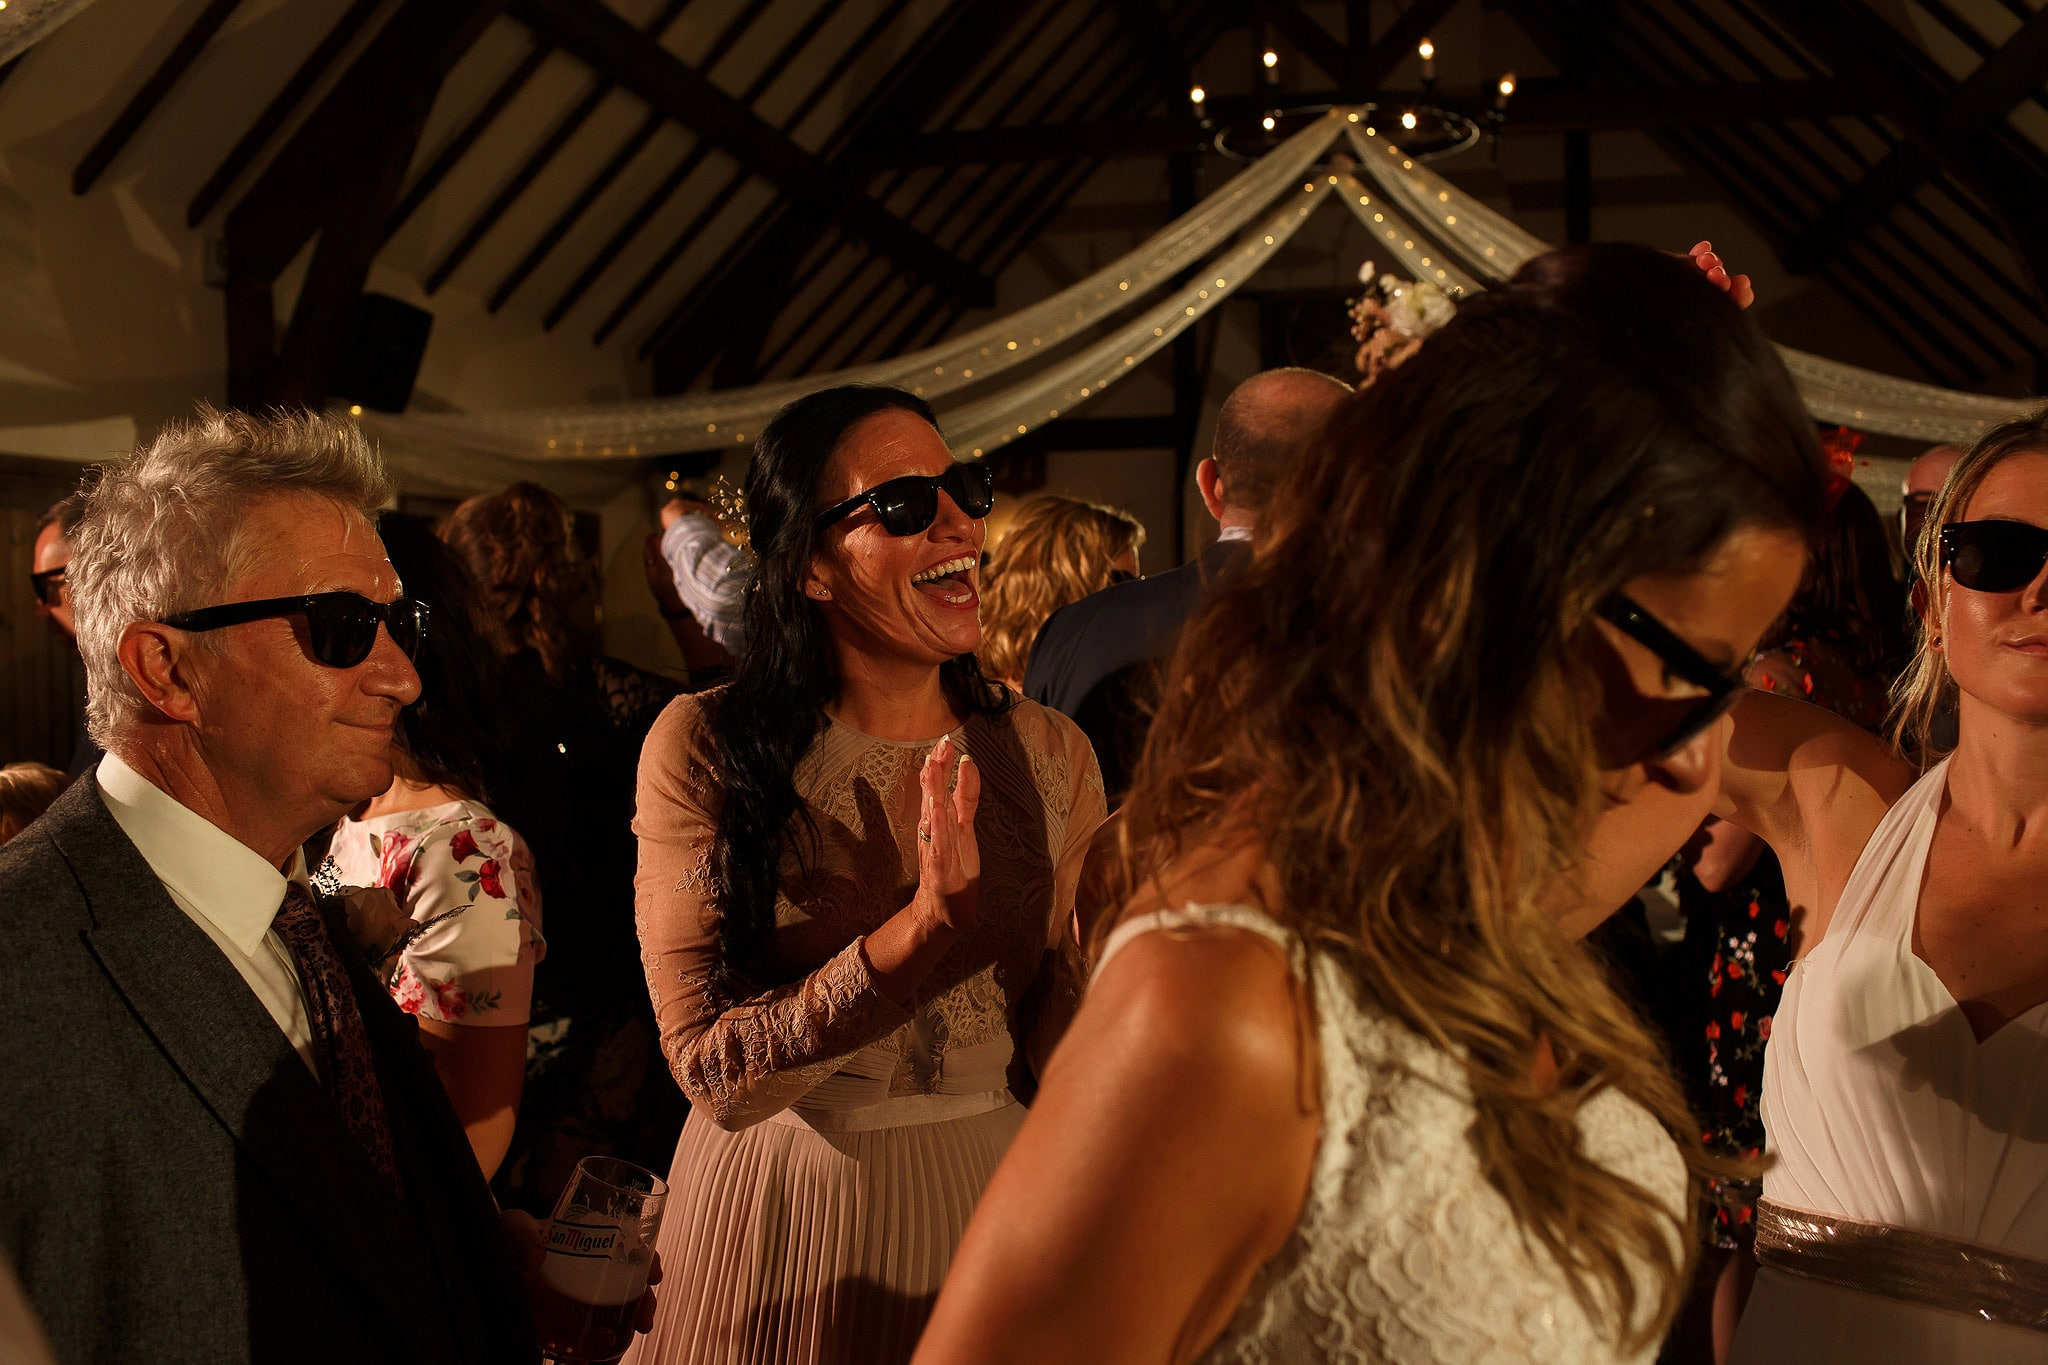 Packed wedding reception as guests dance on the dance floor wearing black sunglasses